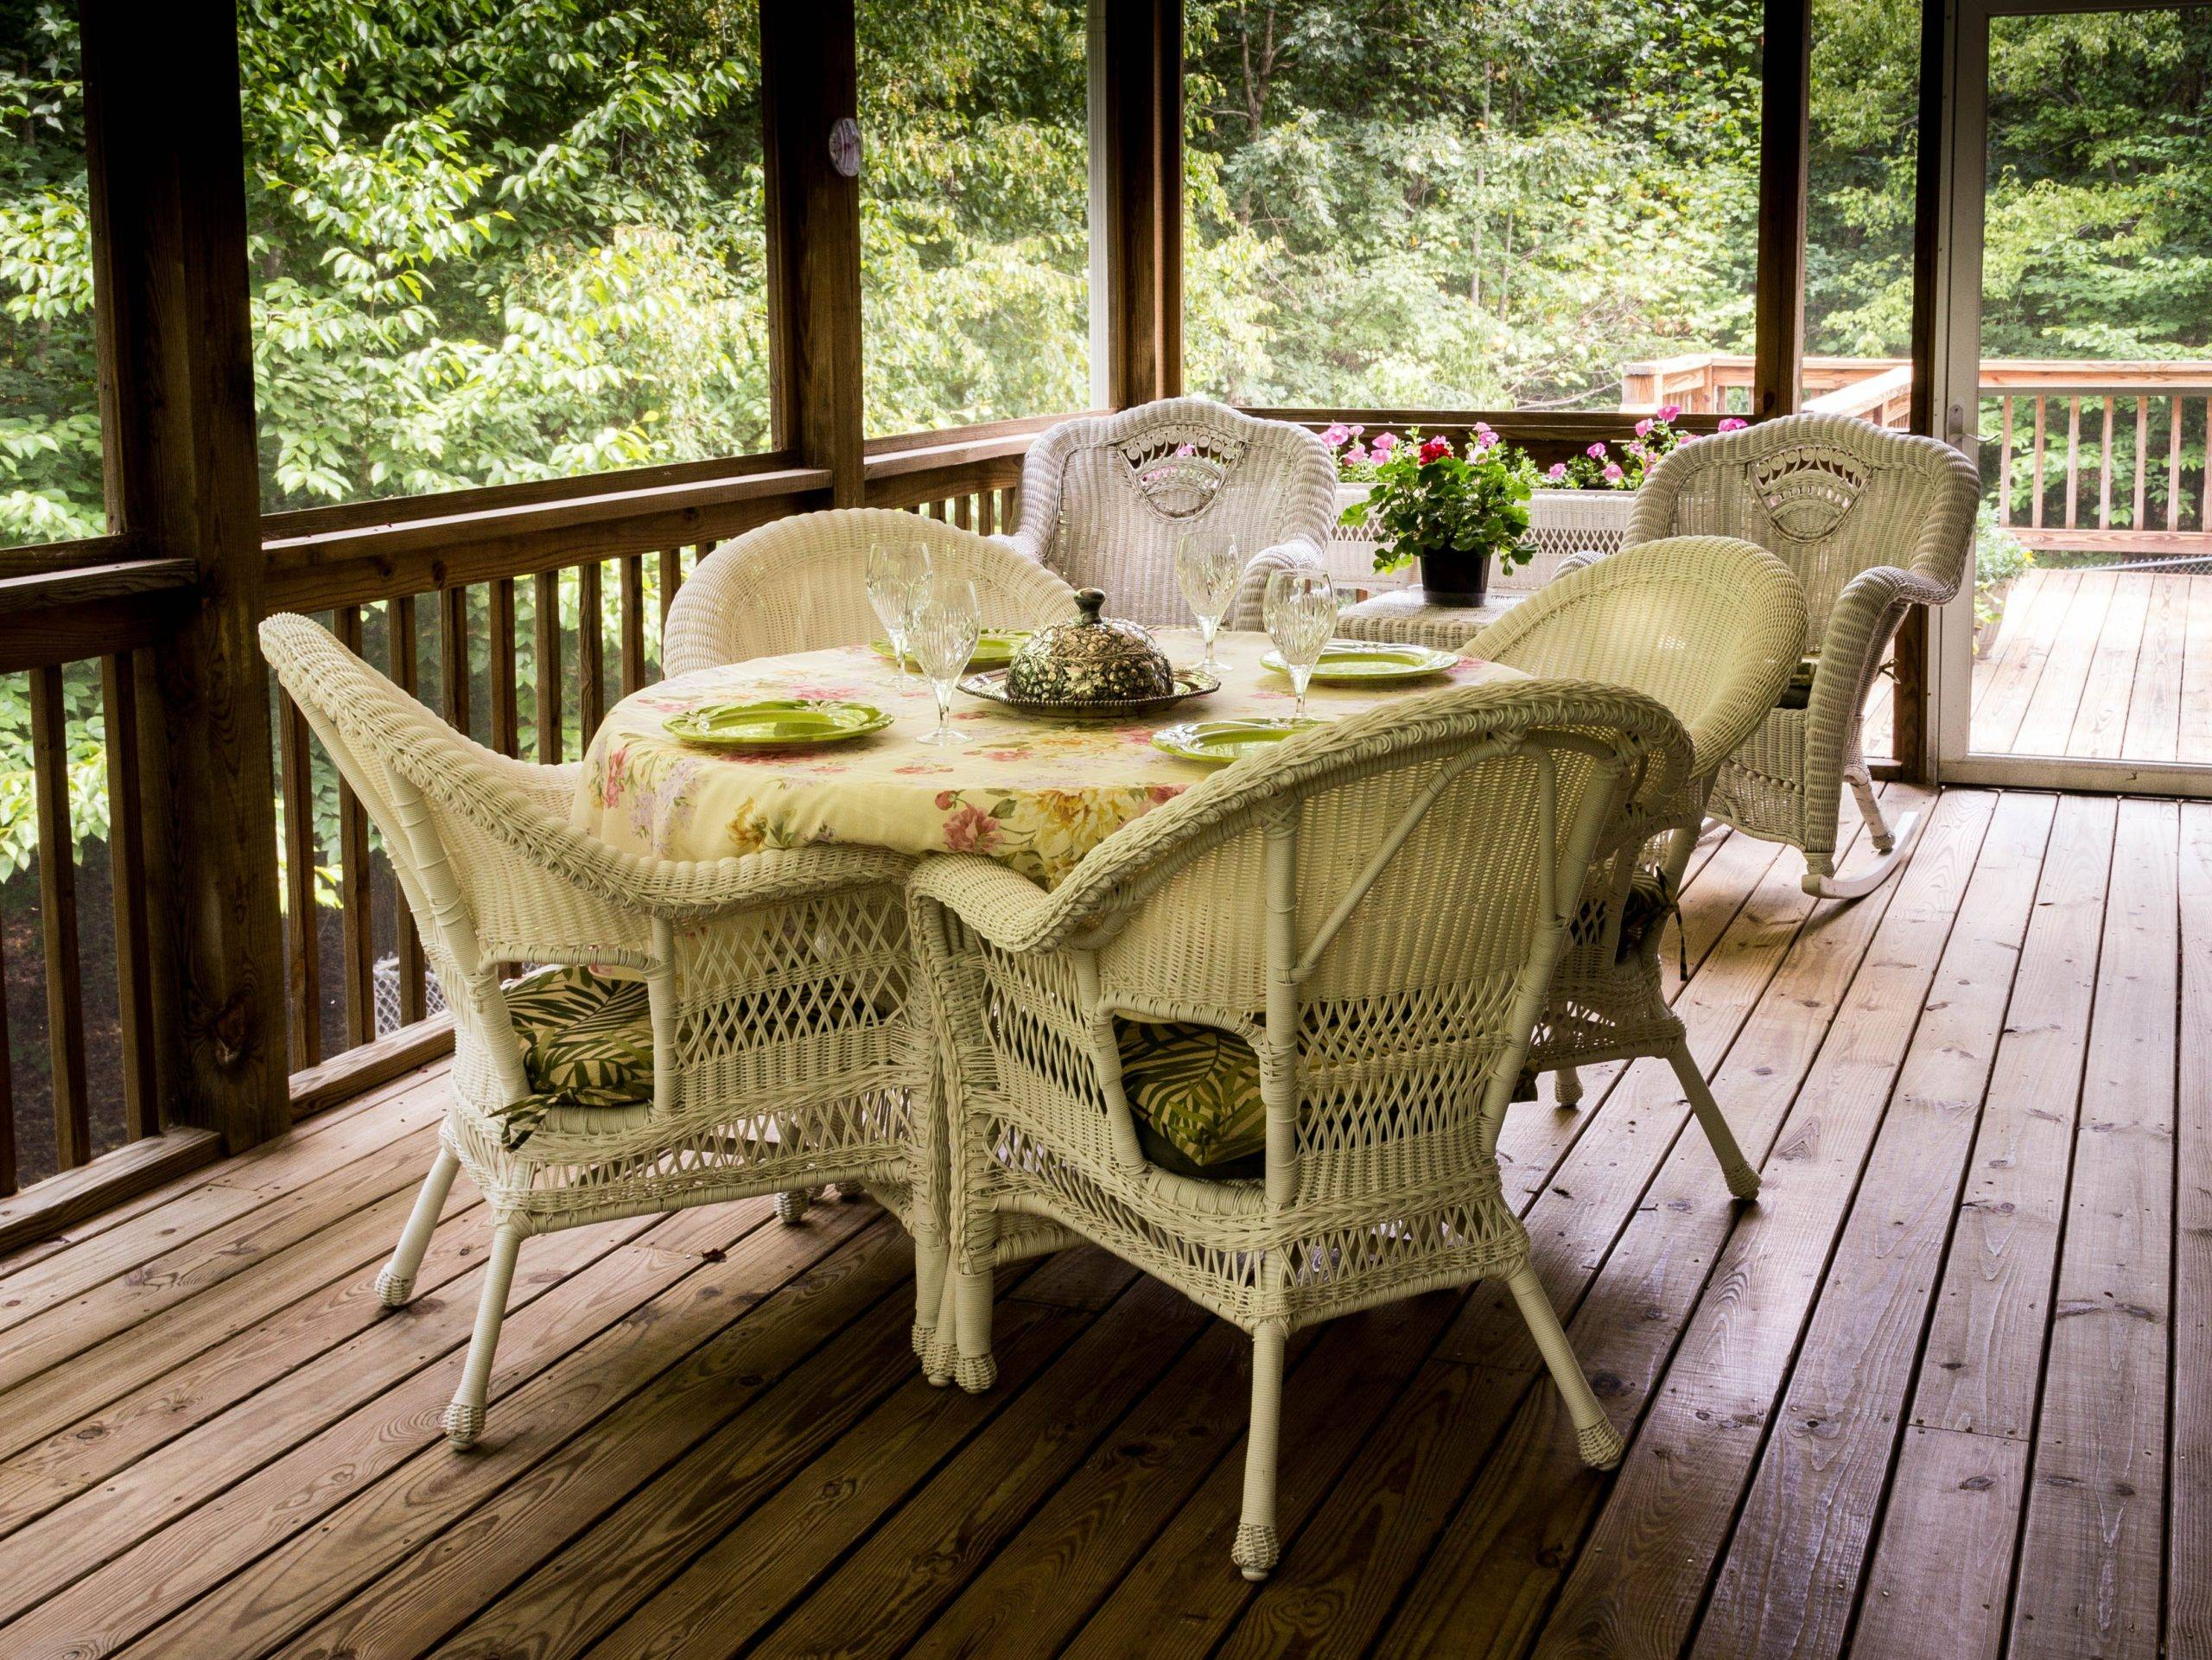 Rattan dining set in a patio